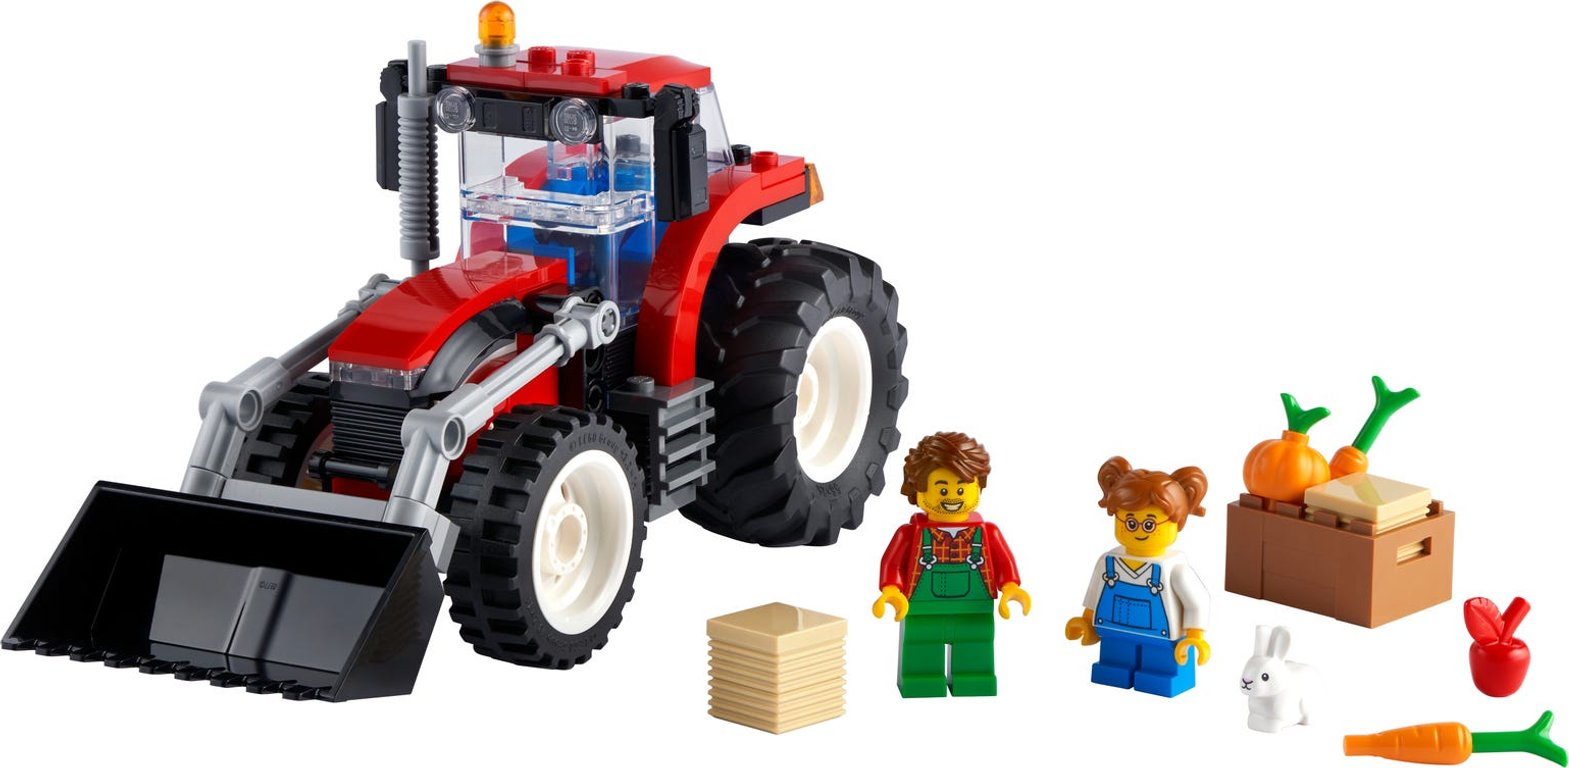 LEGO® City Tractor components